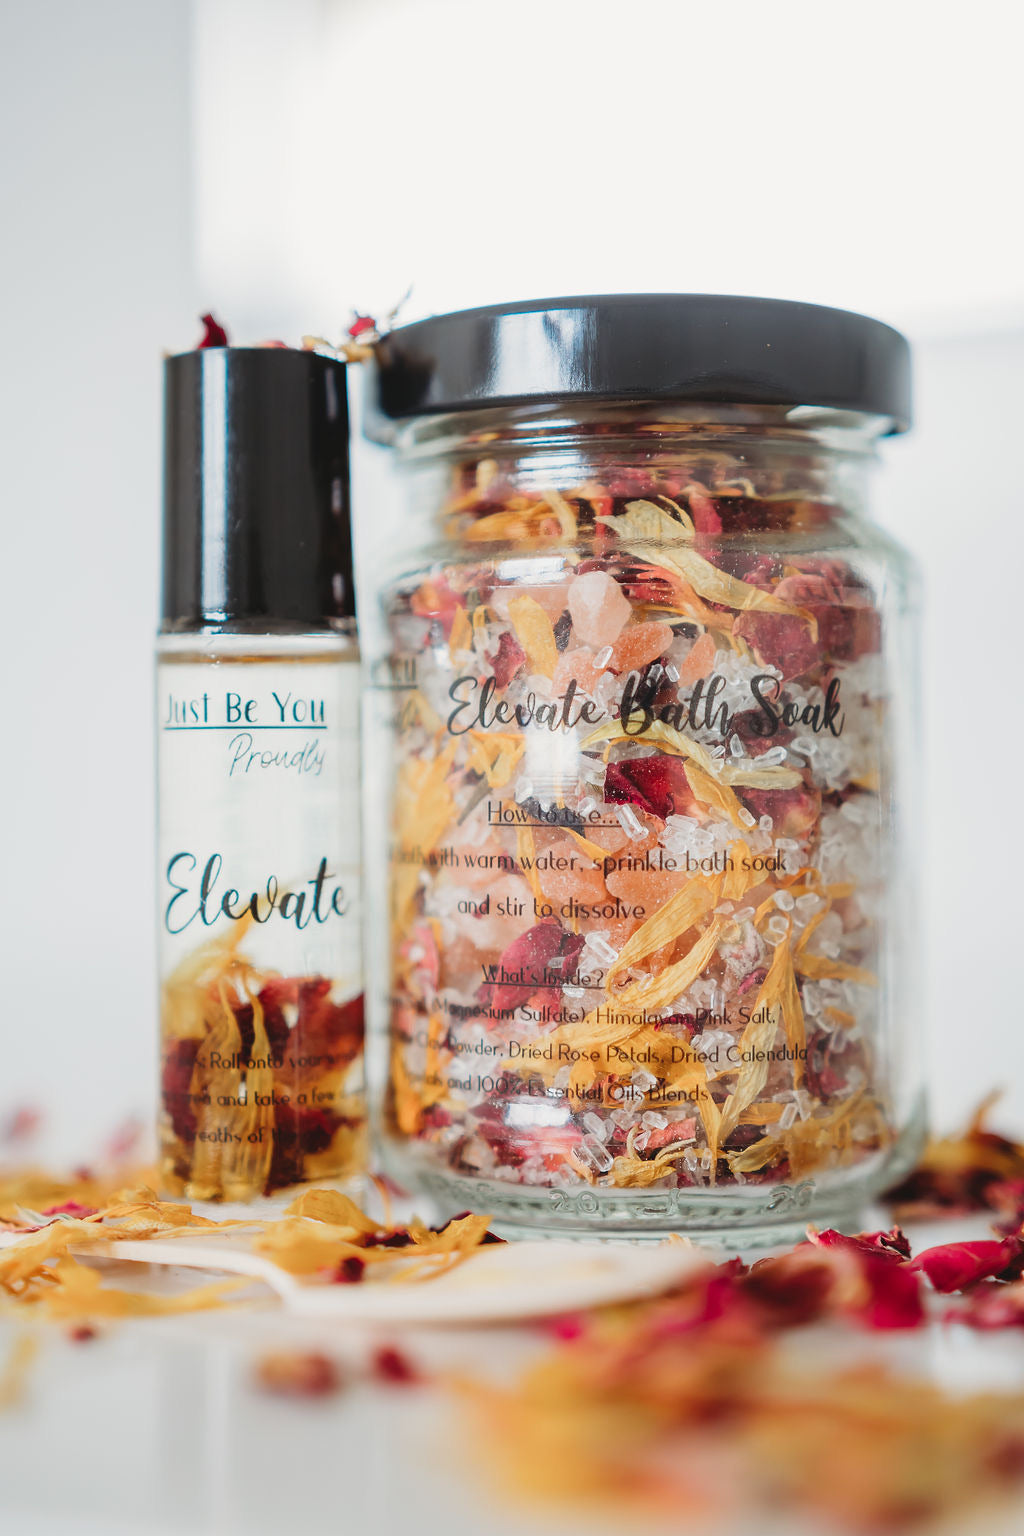 Elevate Bath Soak